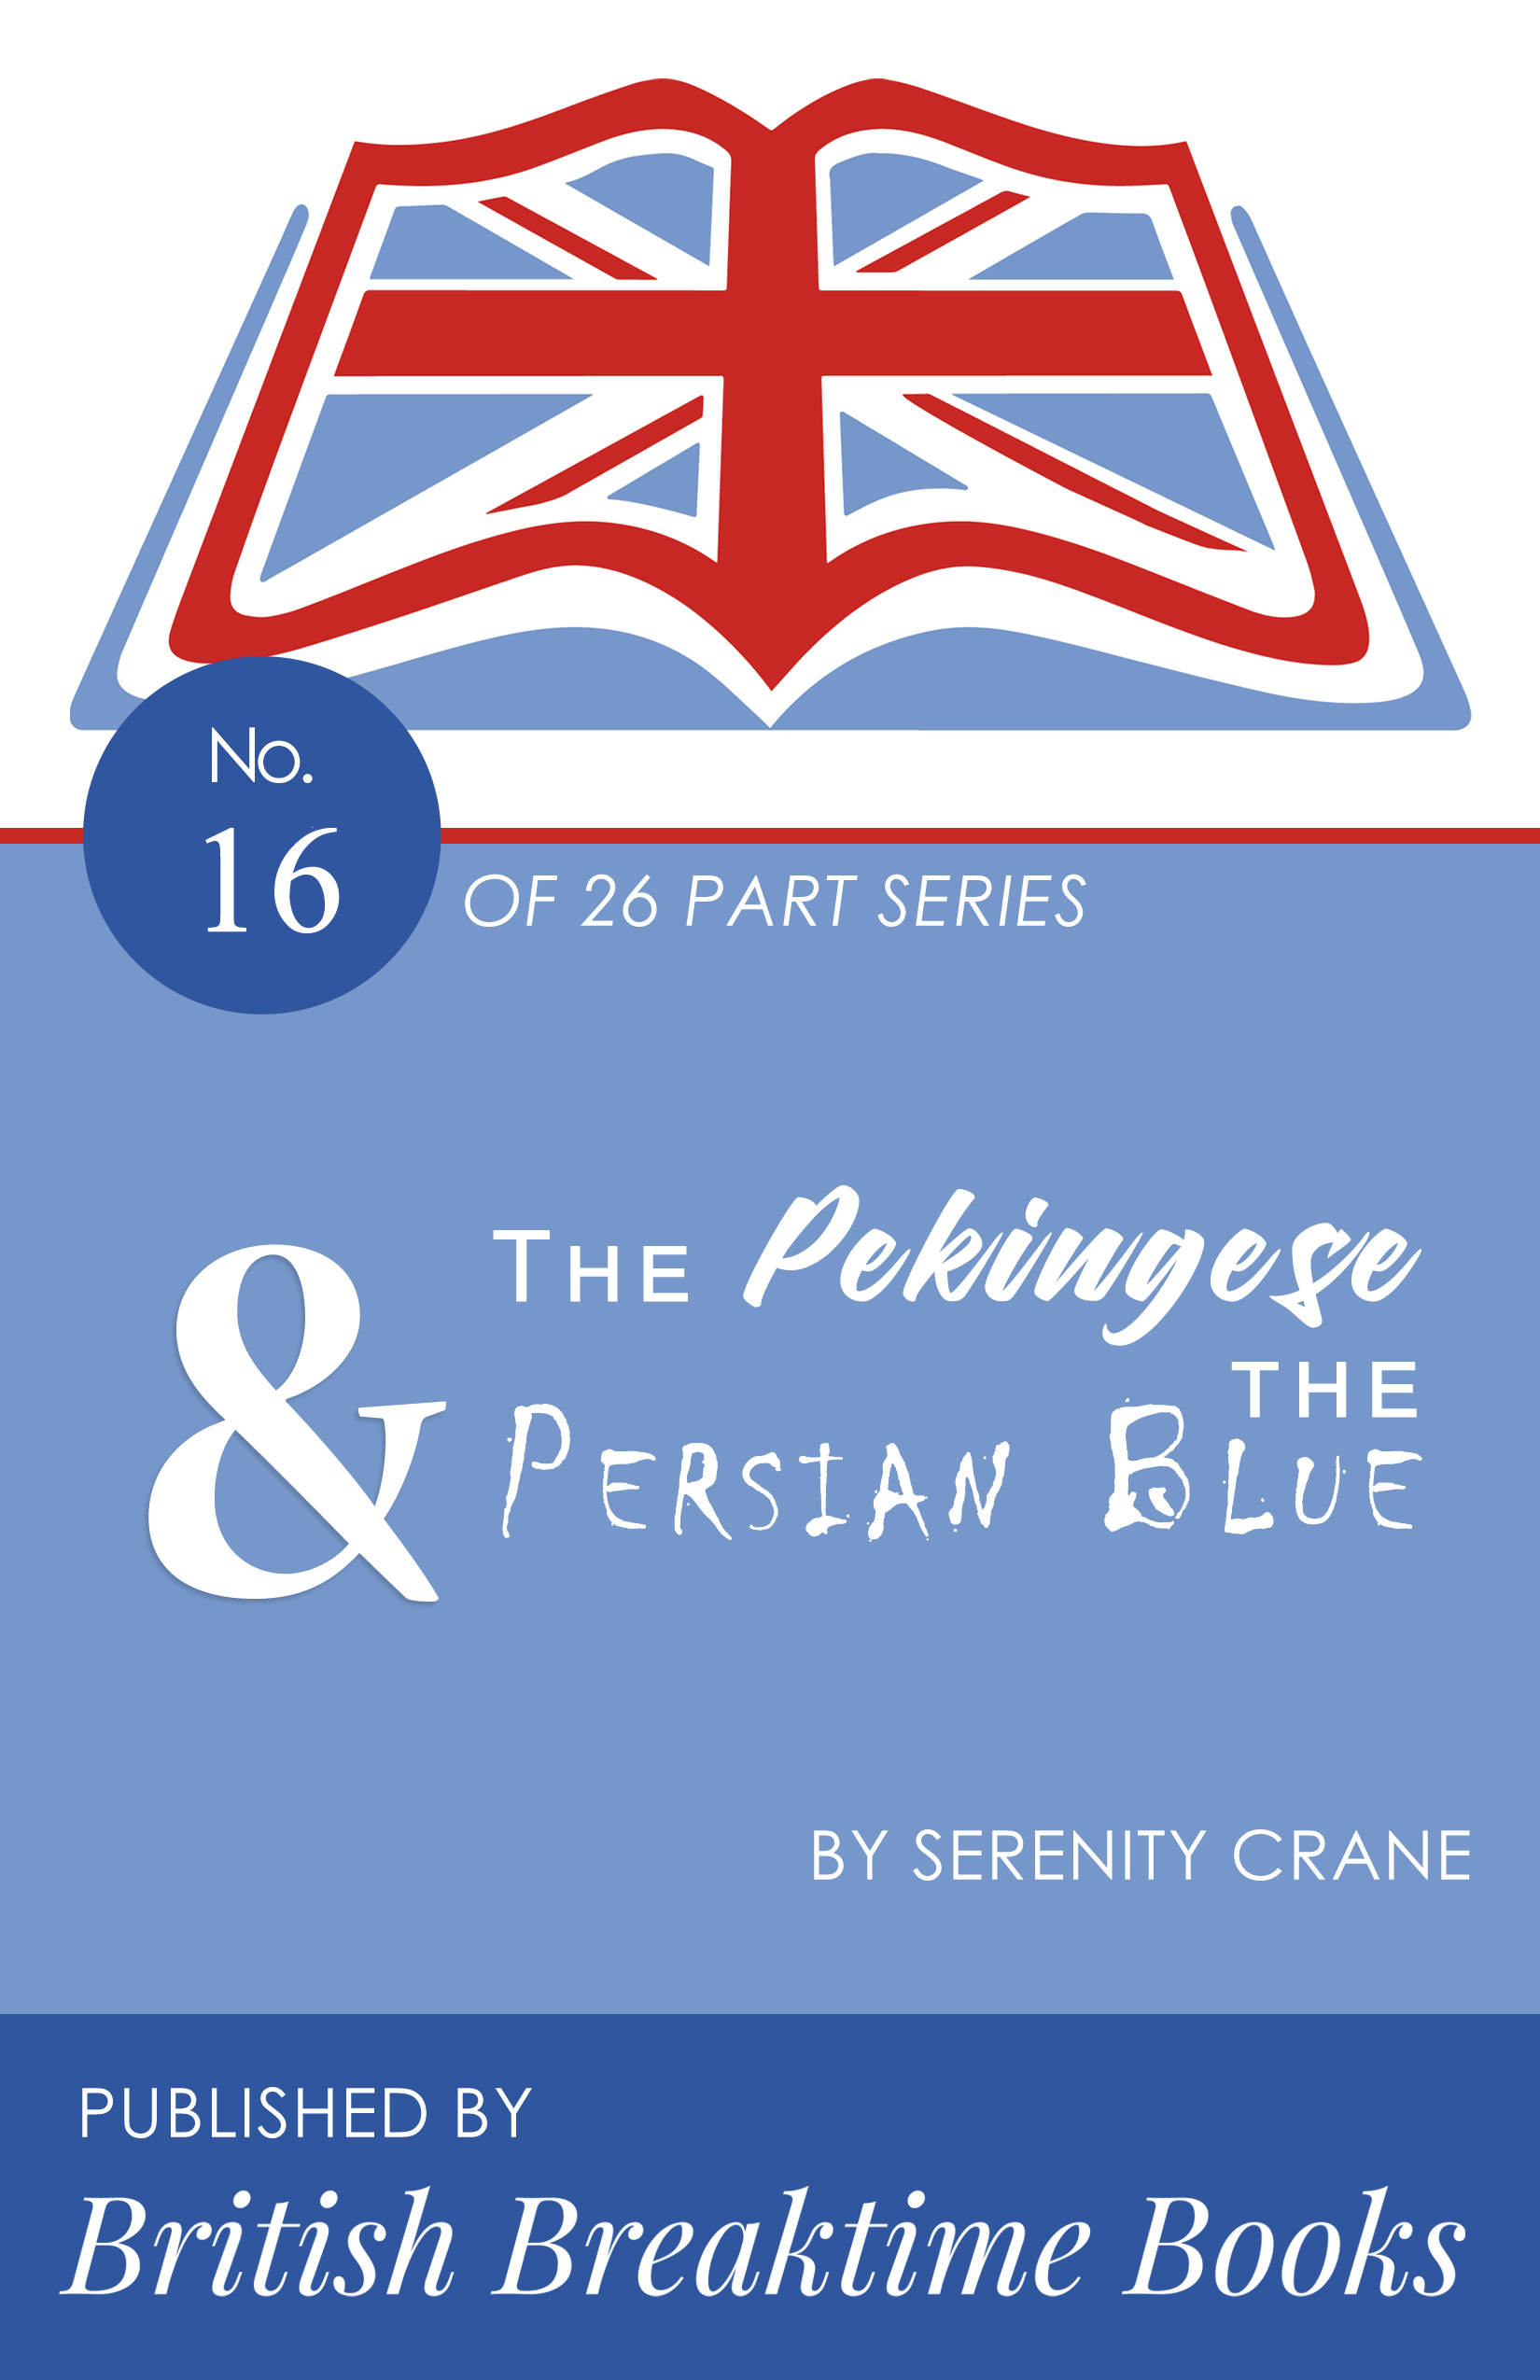 "<span itemprop=""name"">The Pekingese and the Persian Blue</span>"